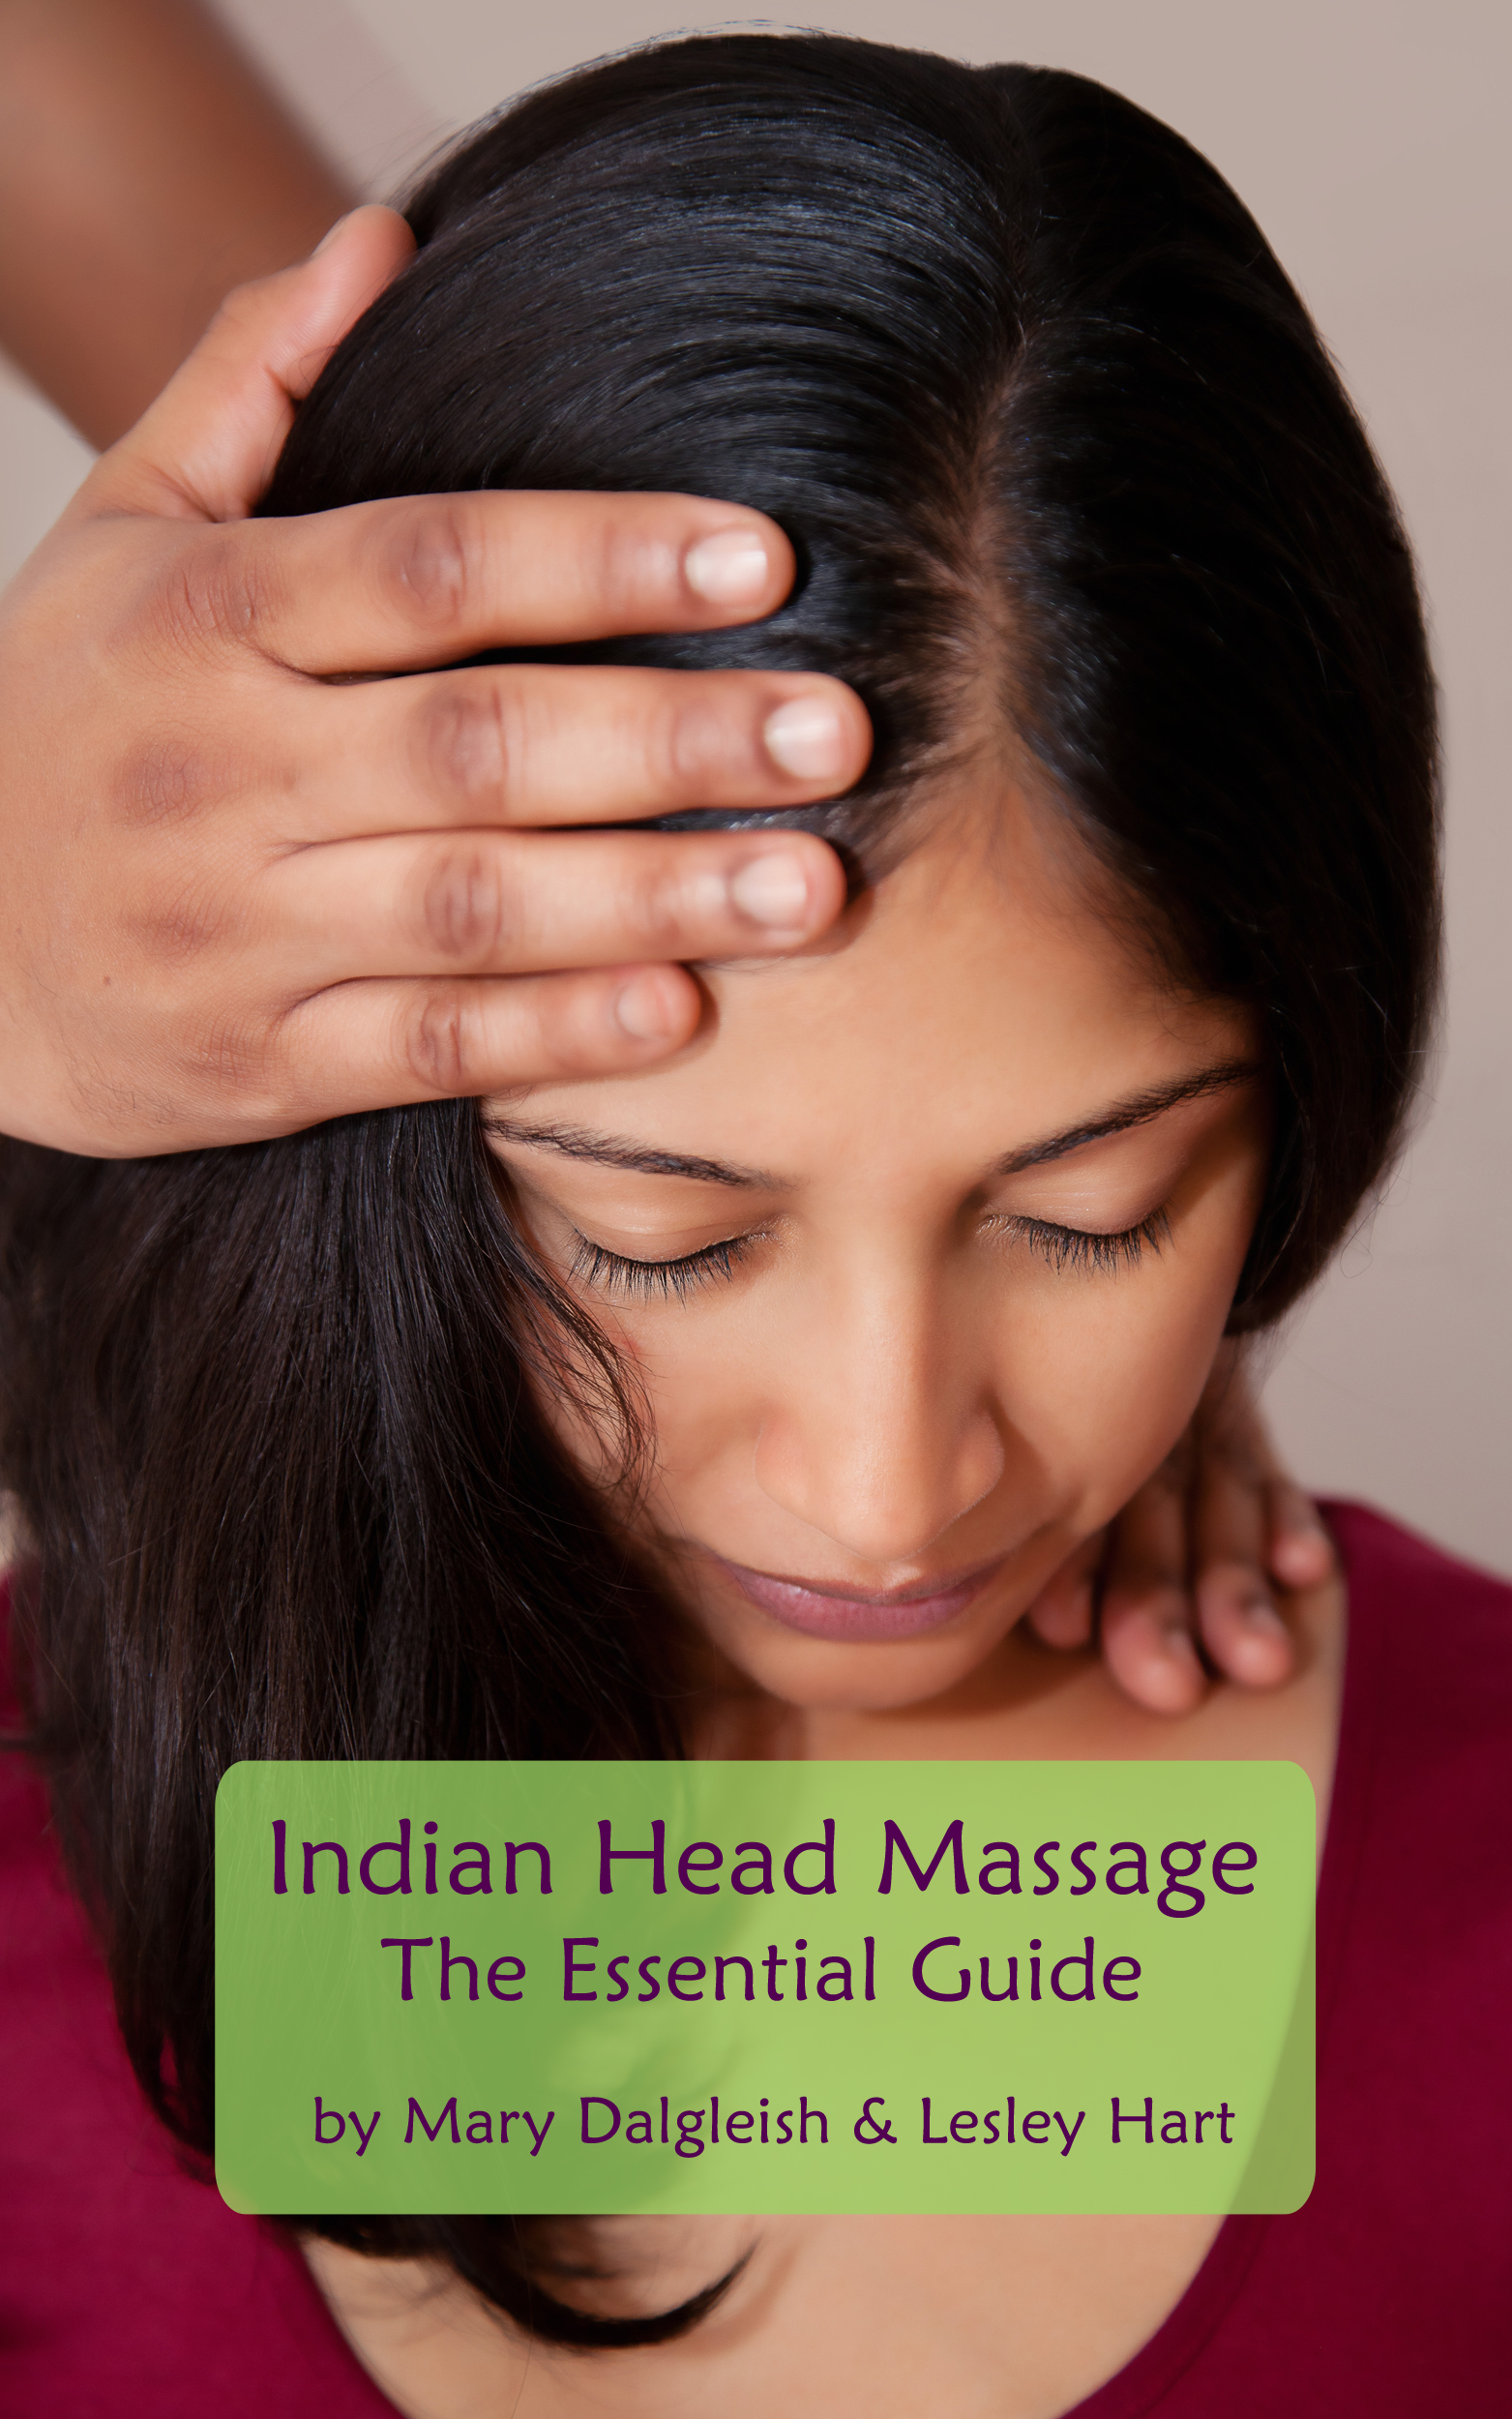 Indian Head Massage: The Essential Guide